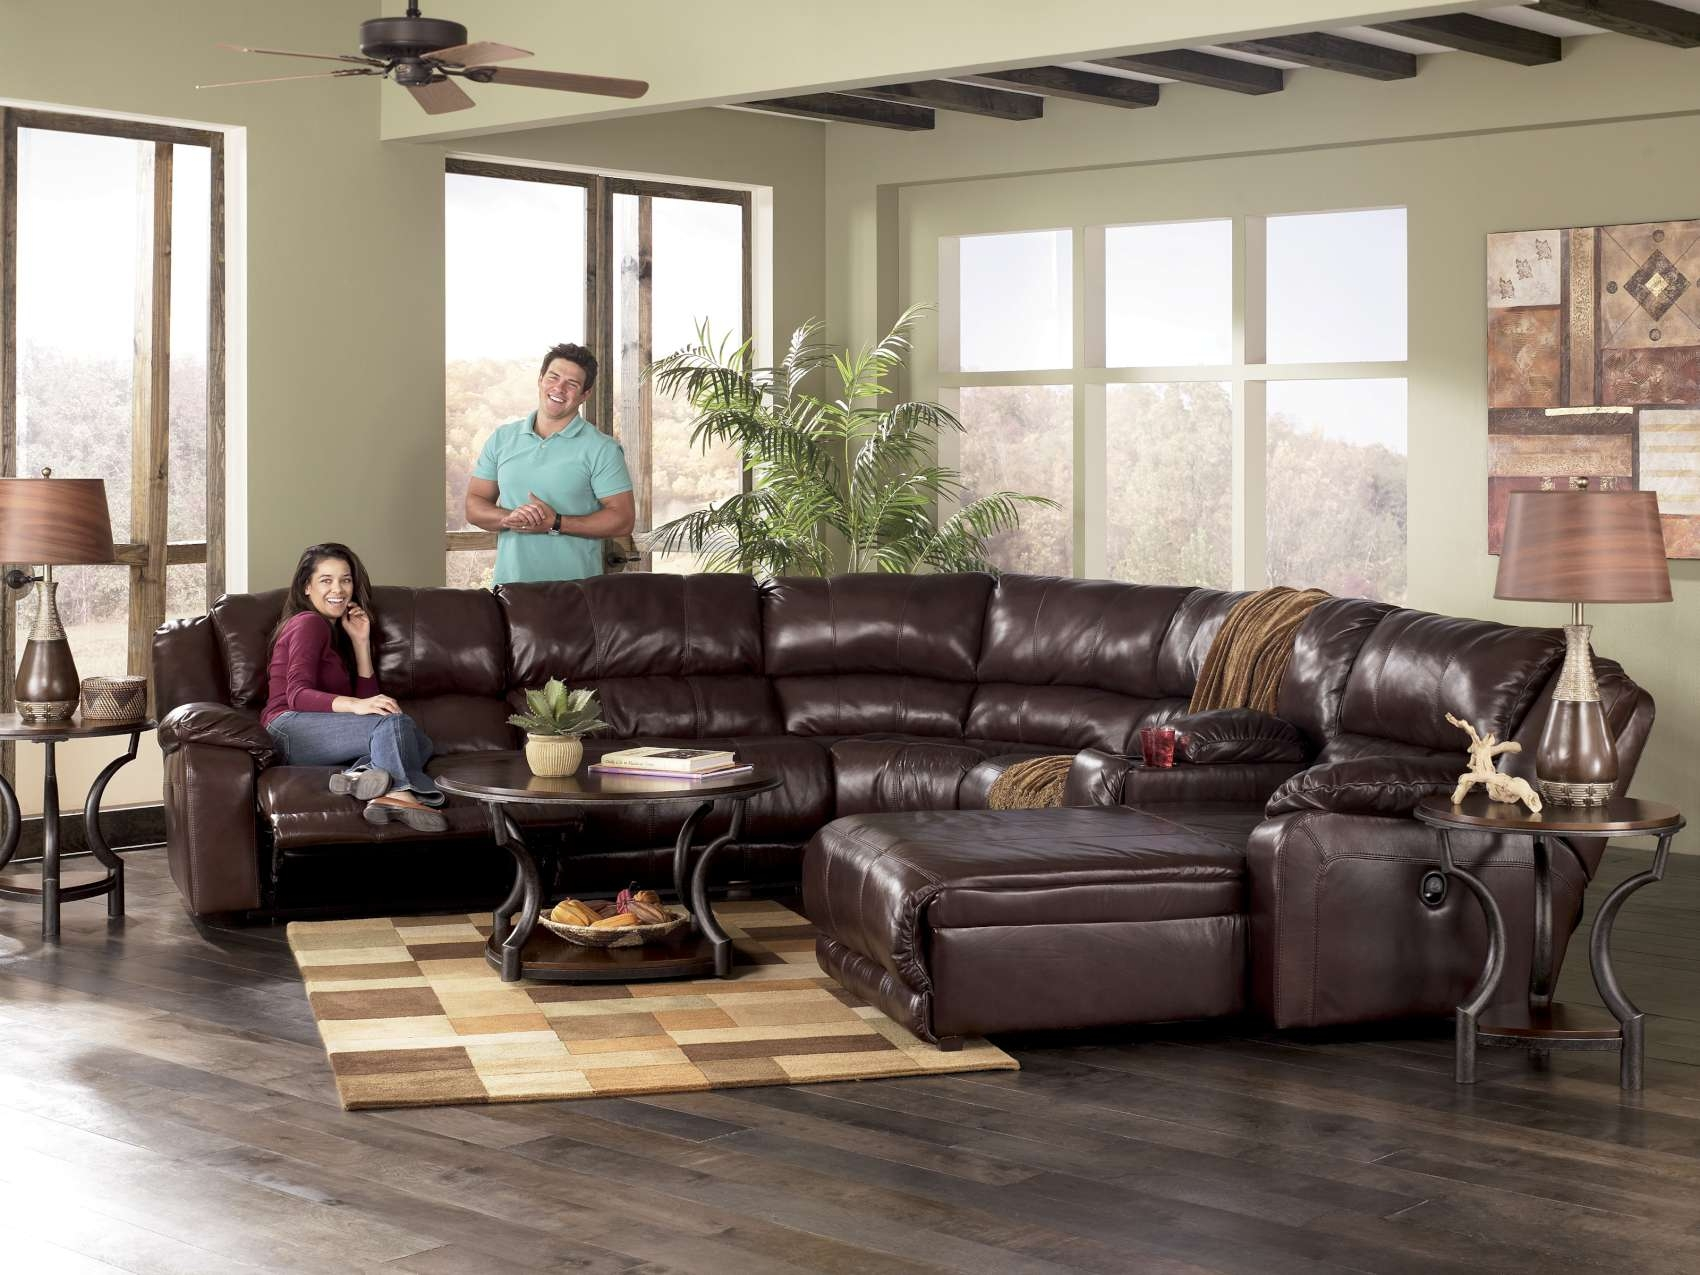 Braxton Java Reclining Sofa Collection97800 Throughout Braxton Sectional Sofa (Image 4 of 15)